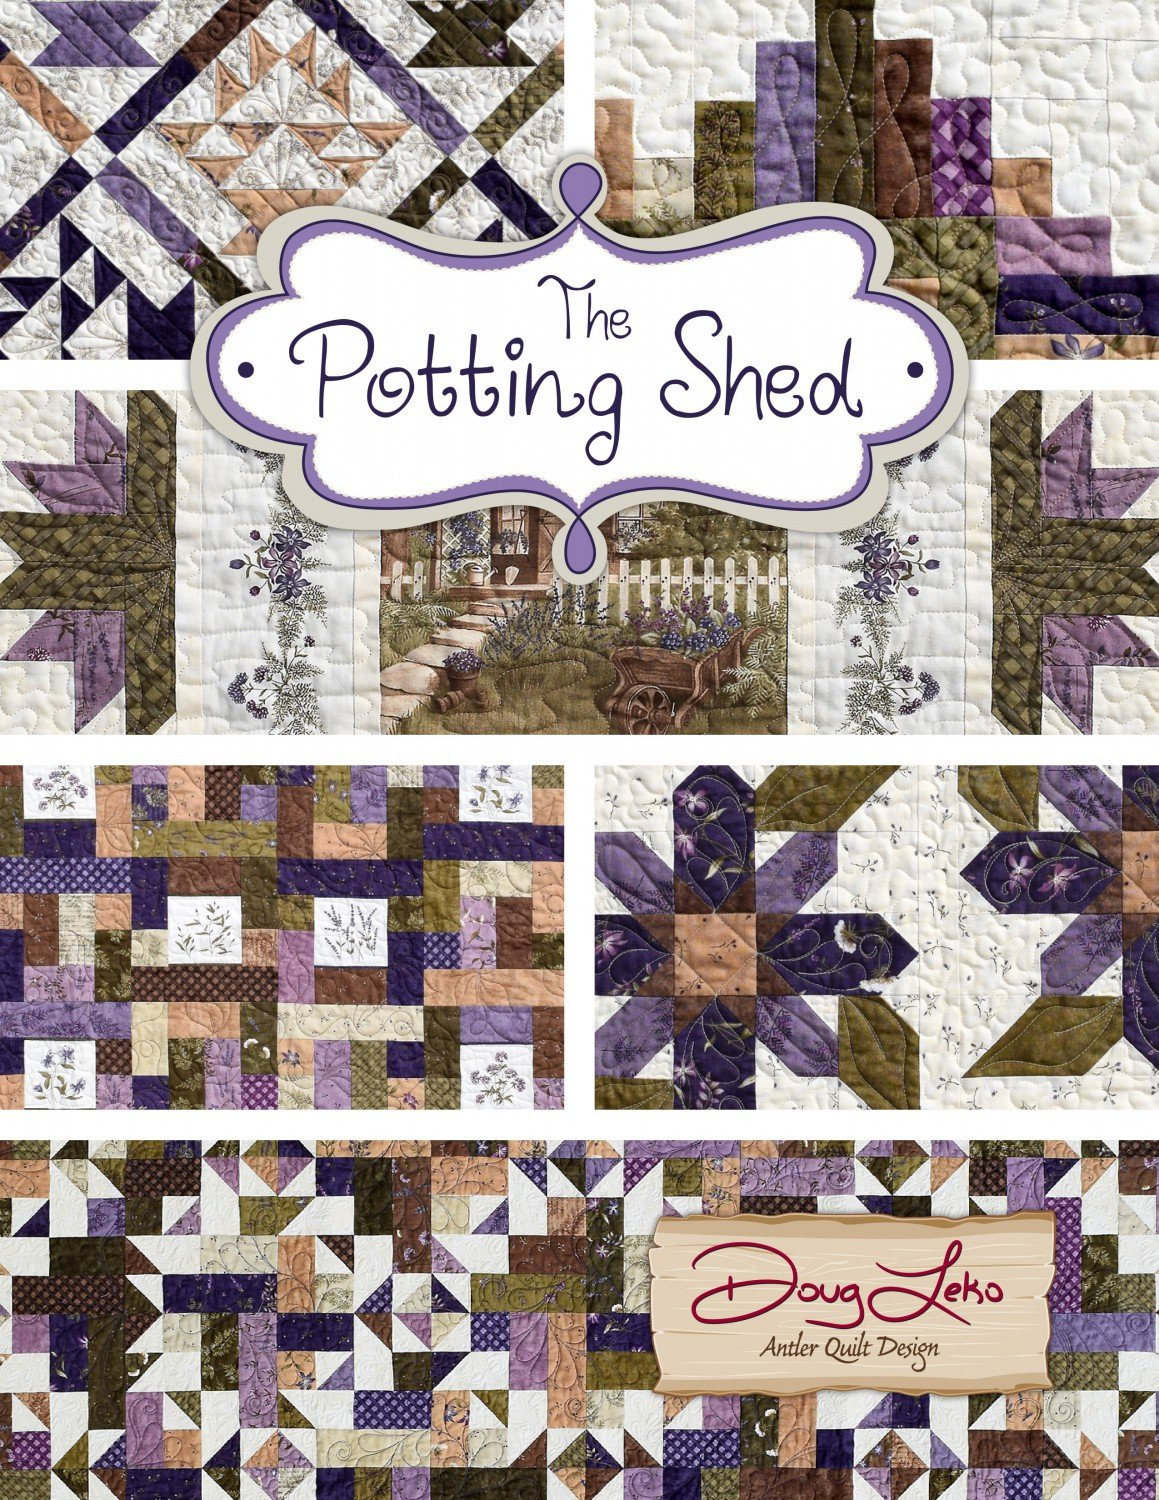 The Potting Shed By Doug Leko Antler Quilt Designs Aqd0405